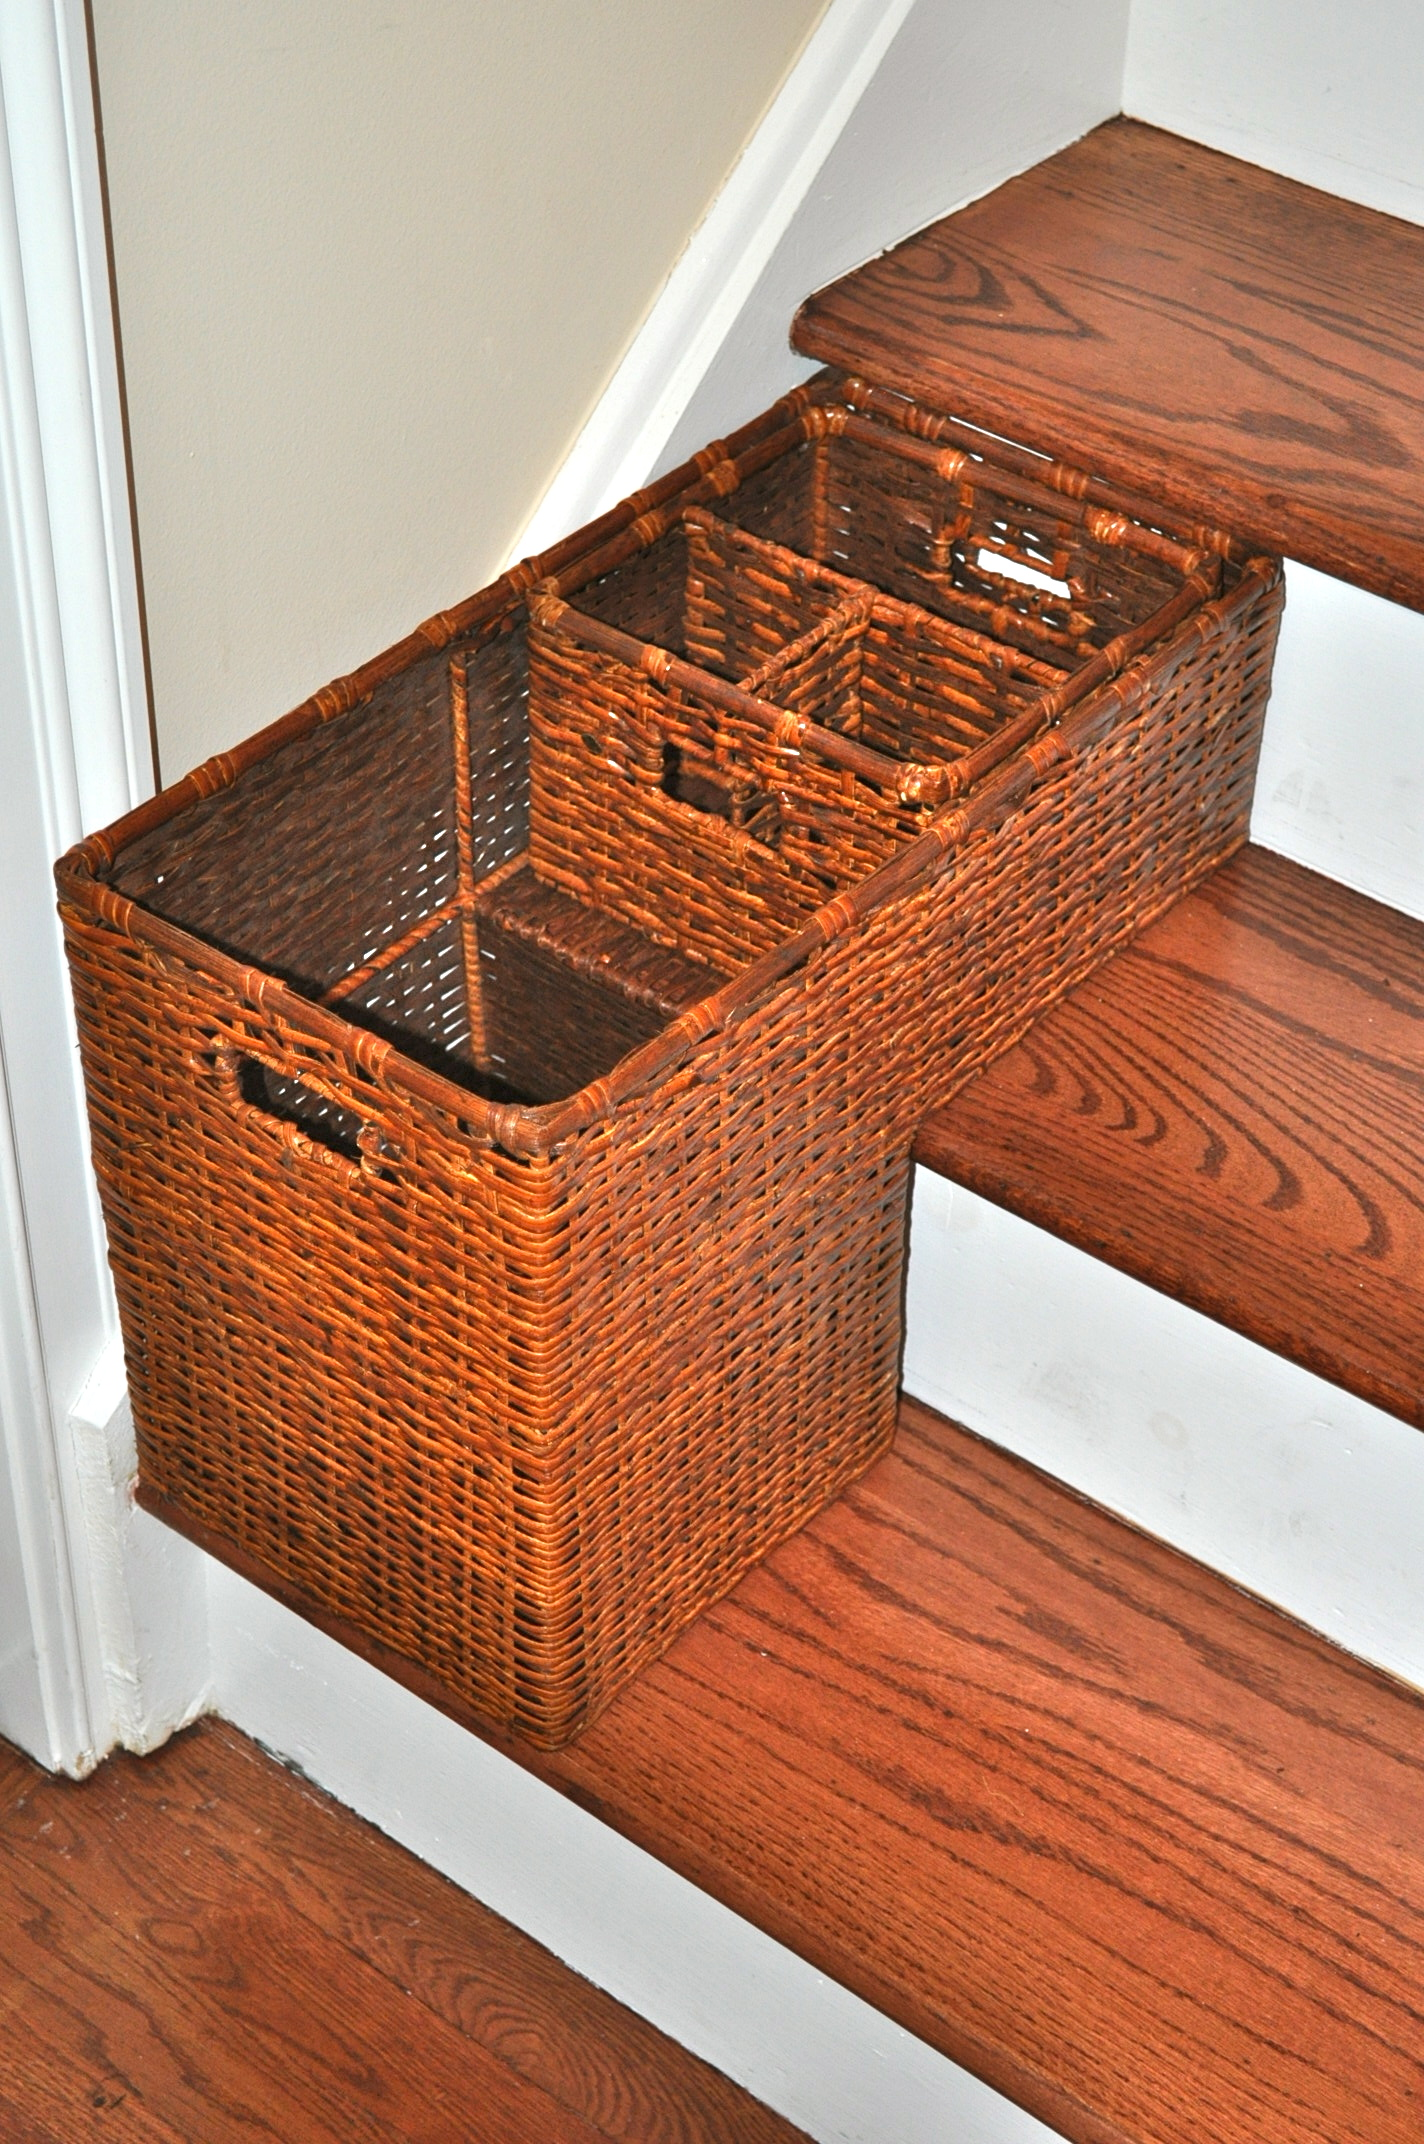 Attractive Classic Tone Basket Design For Stairs Made Of Rattan Material With Storage  Partition On Wooden Steps